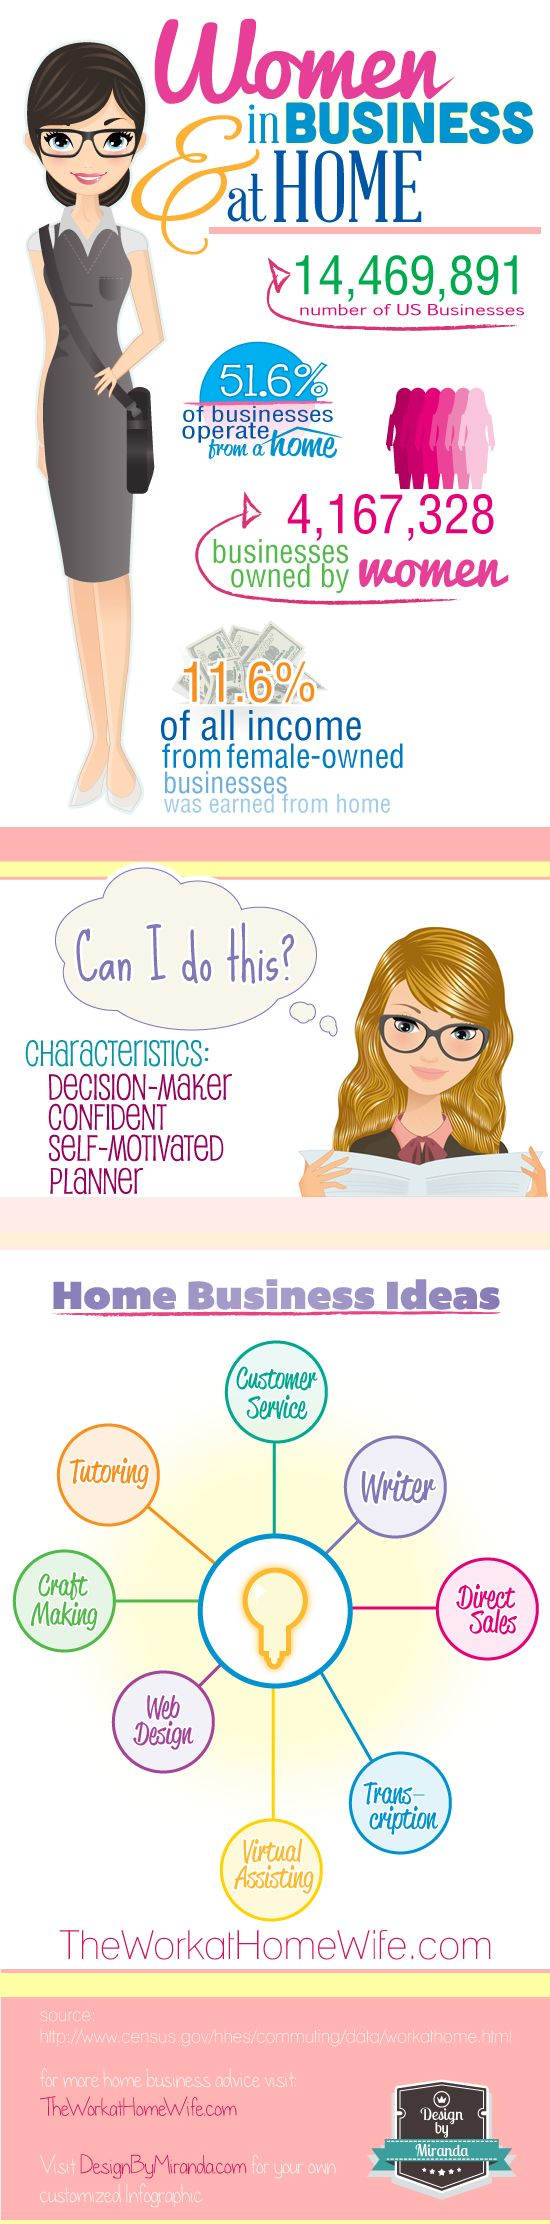 Small Business Home Based Ideas Part - 42: Best 25+ At Home Business Ideas Ideas On Pinterest | Business Ideas From  Home, Start A Business From Home And Home Based Business Opportunities